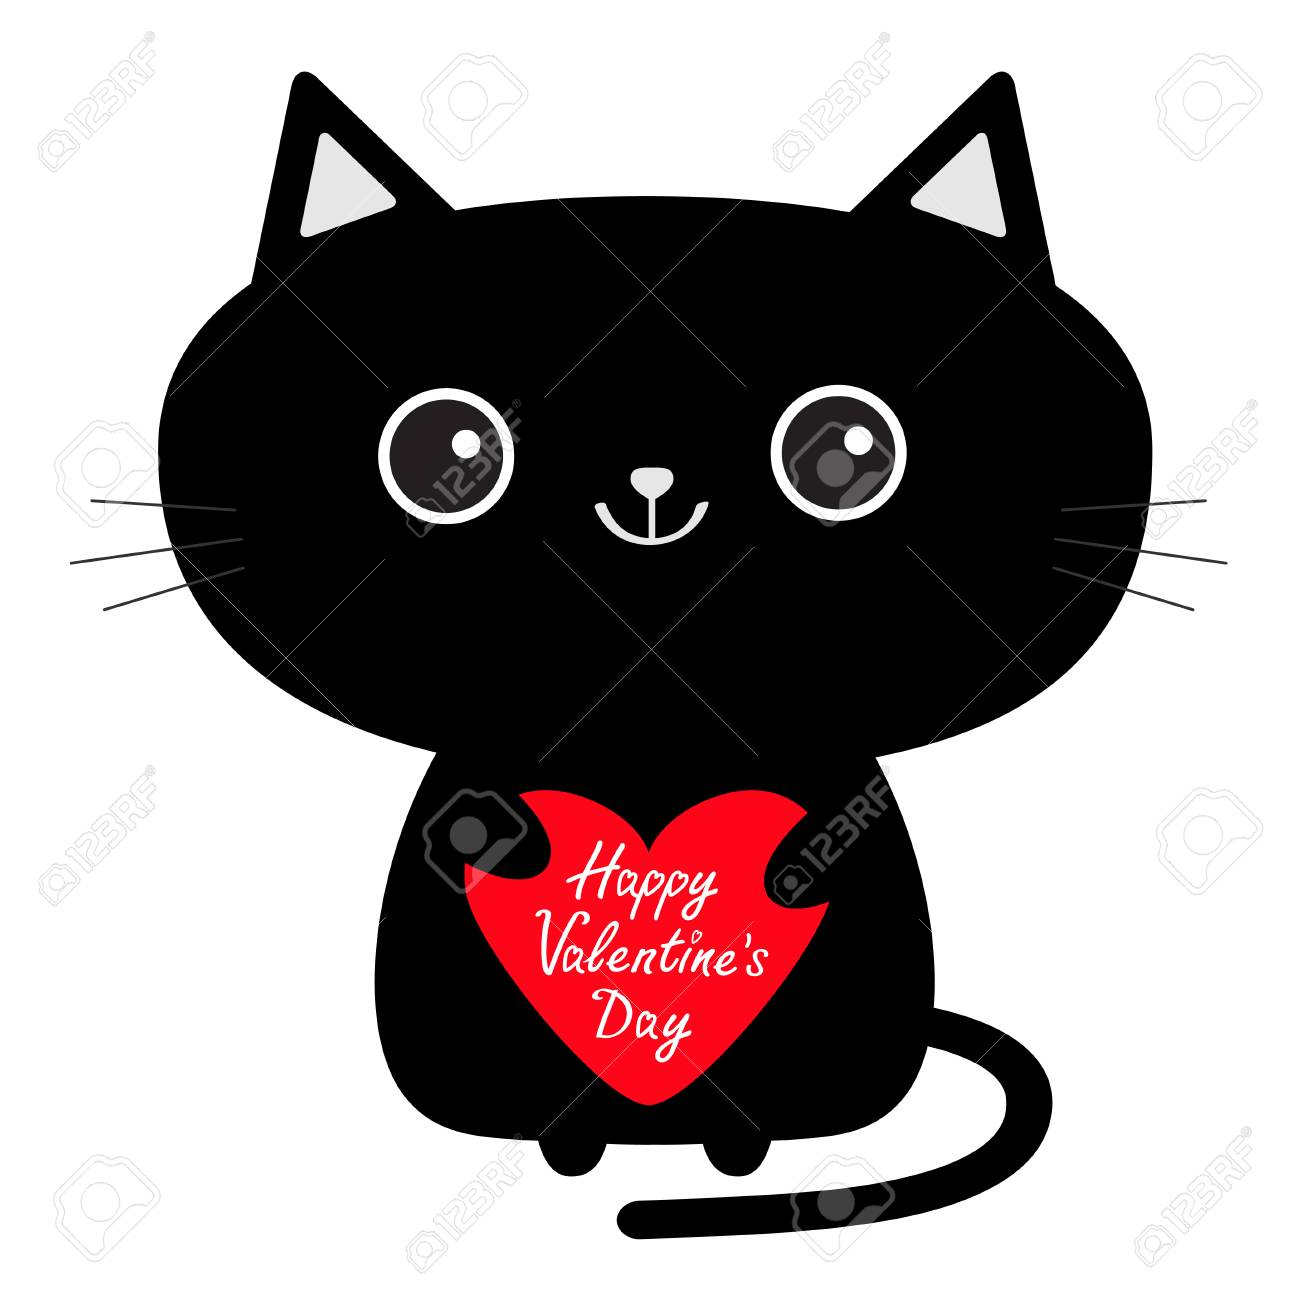 Happy Valentines Day Cute Black Cat Icon Holding Red Heart